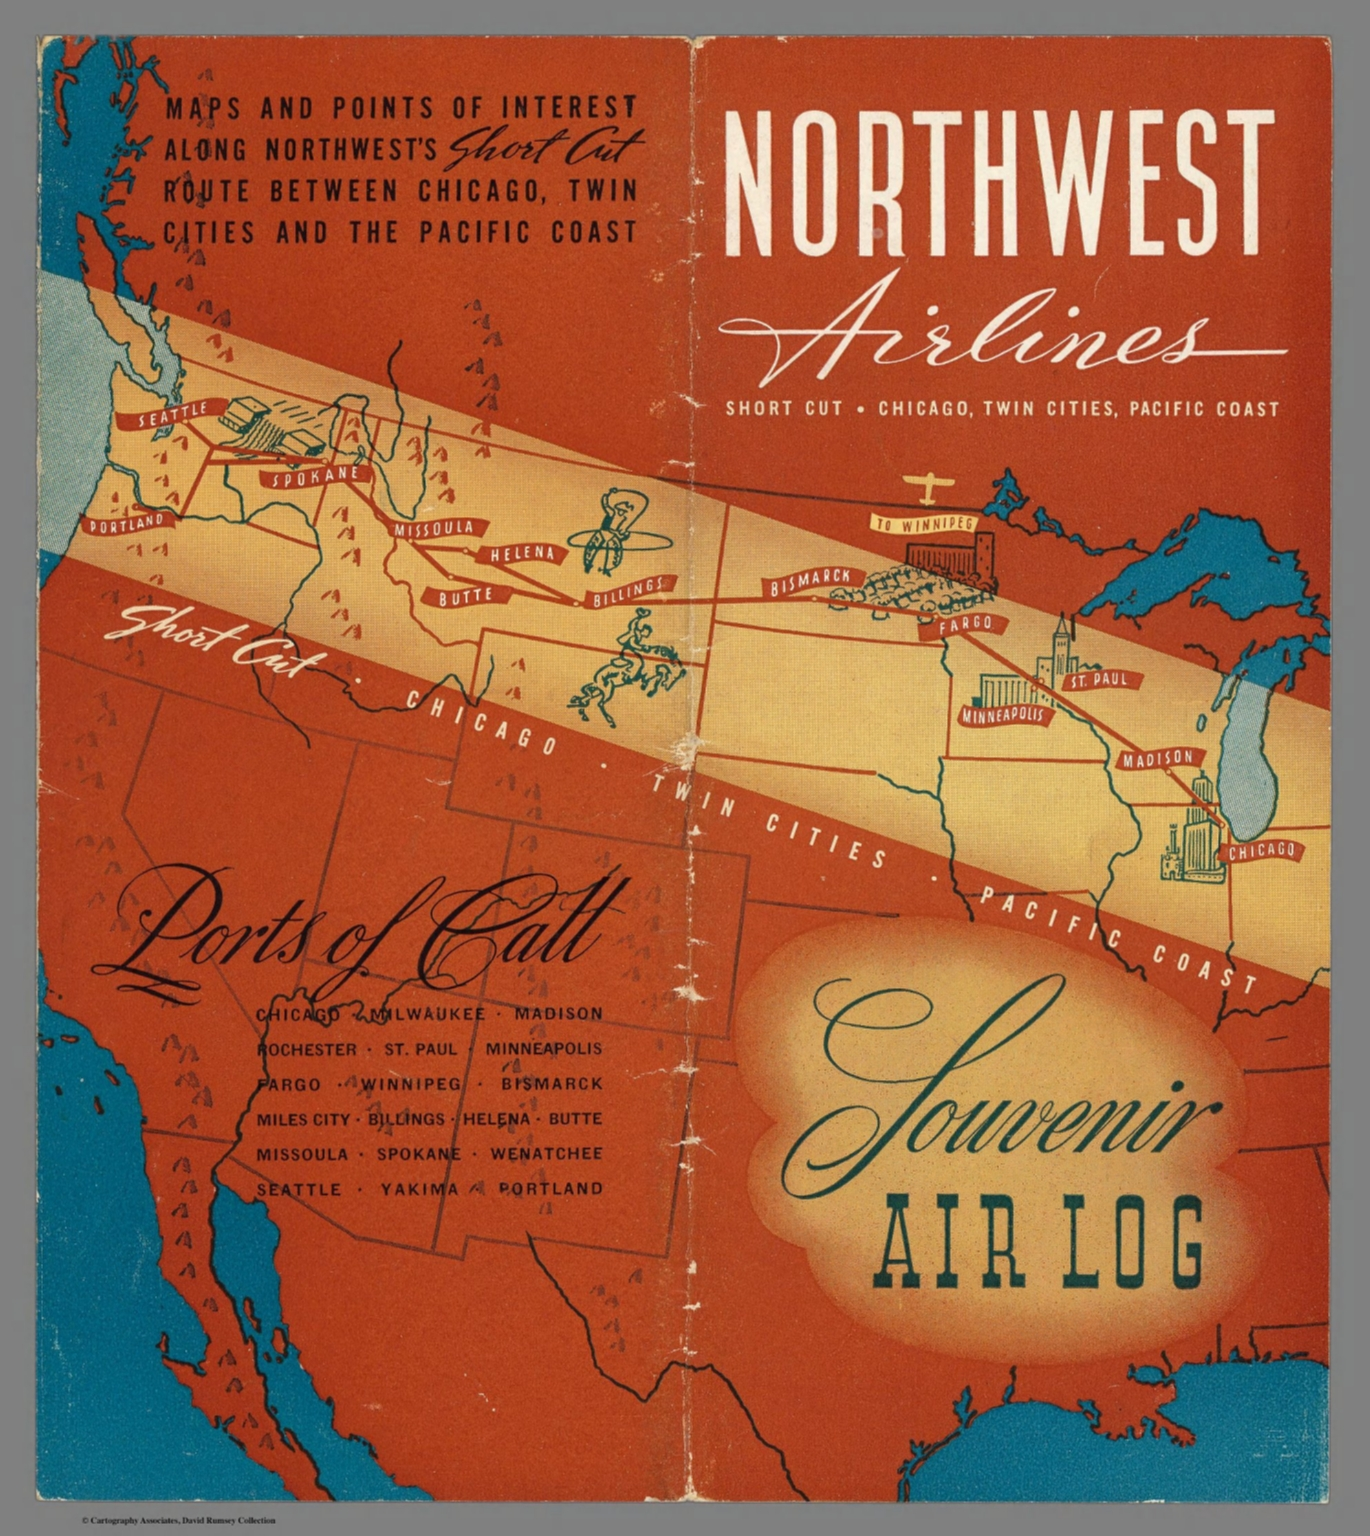 Northwest Chicago Map.Covers Northwest Airlines Short Cut Chicago Twin Cities